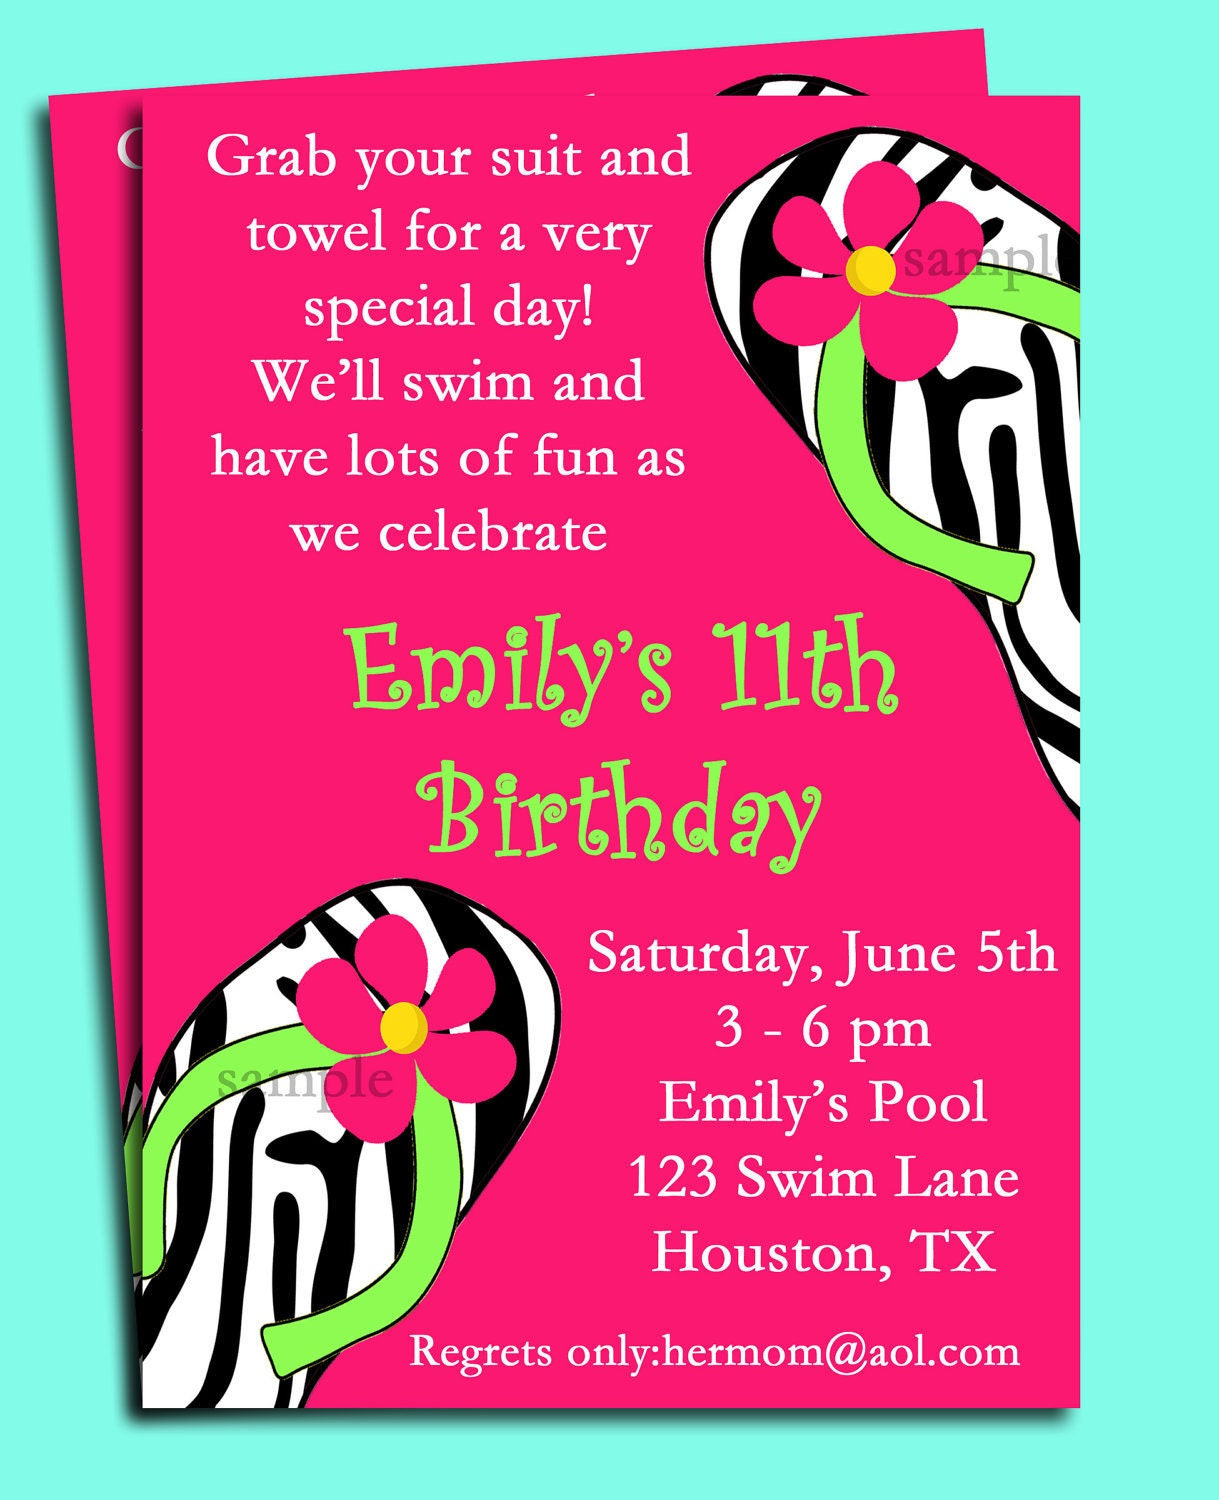 Pool Party Invitation Spa Party Invitation Swim Party – Spa Party Invitation Wording